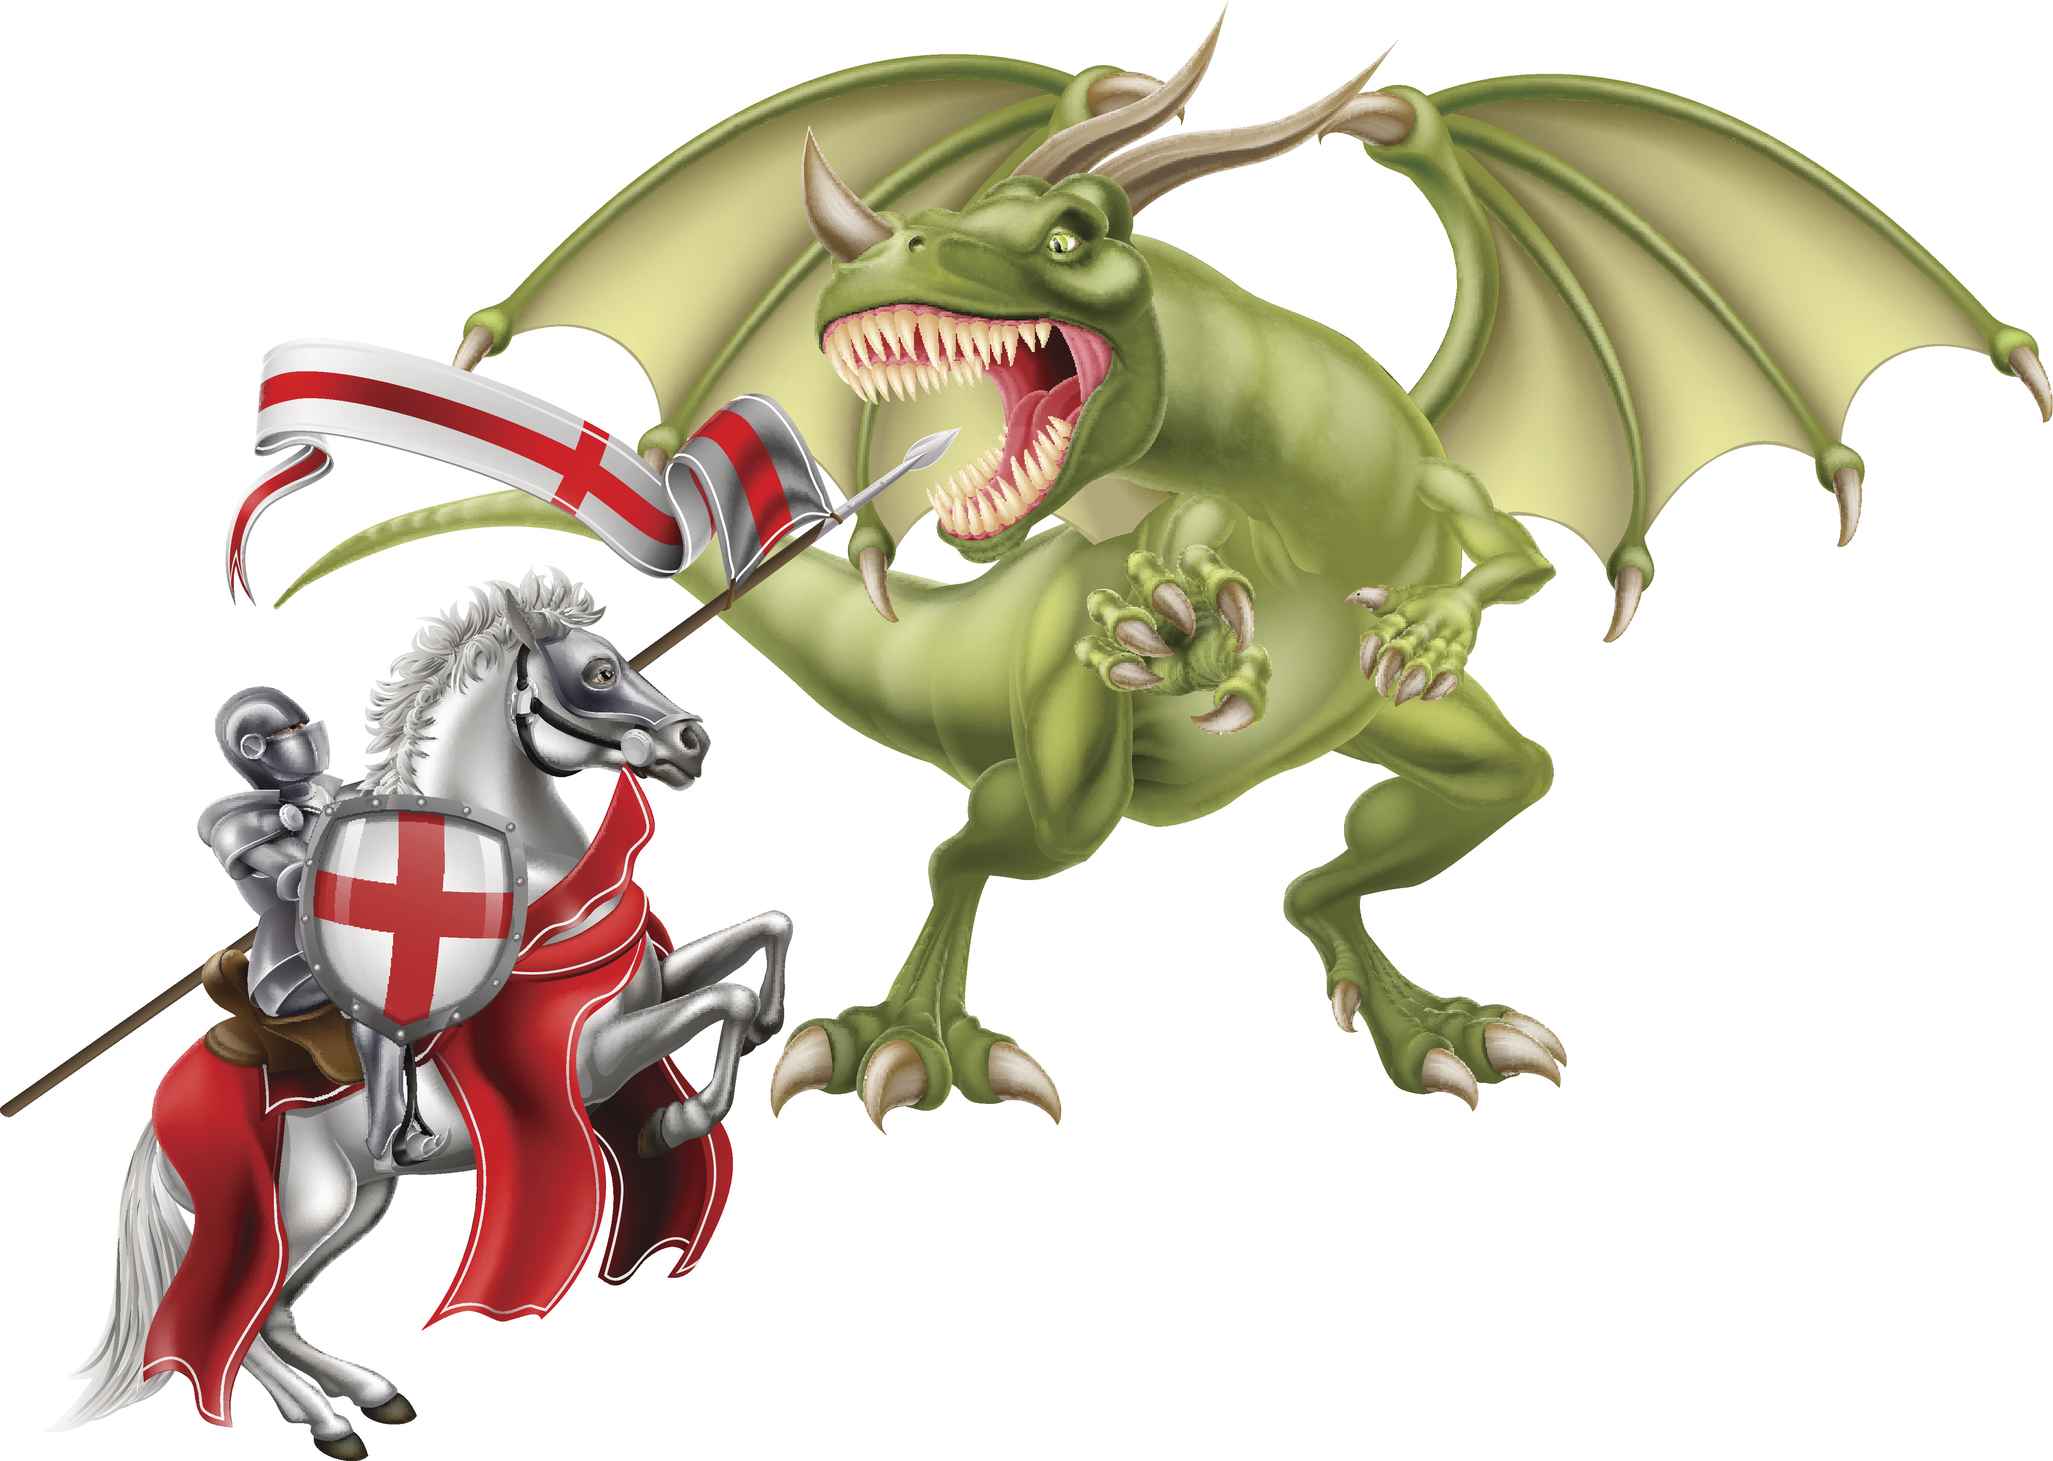 Legend says St George fought a dragon. Photo: Getty/ChrisGorgio